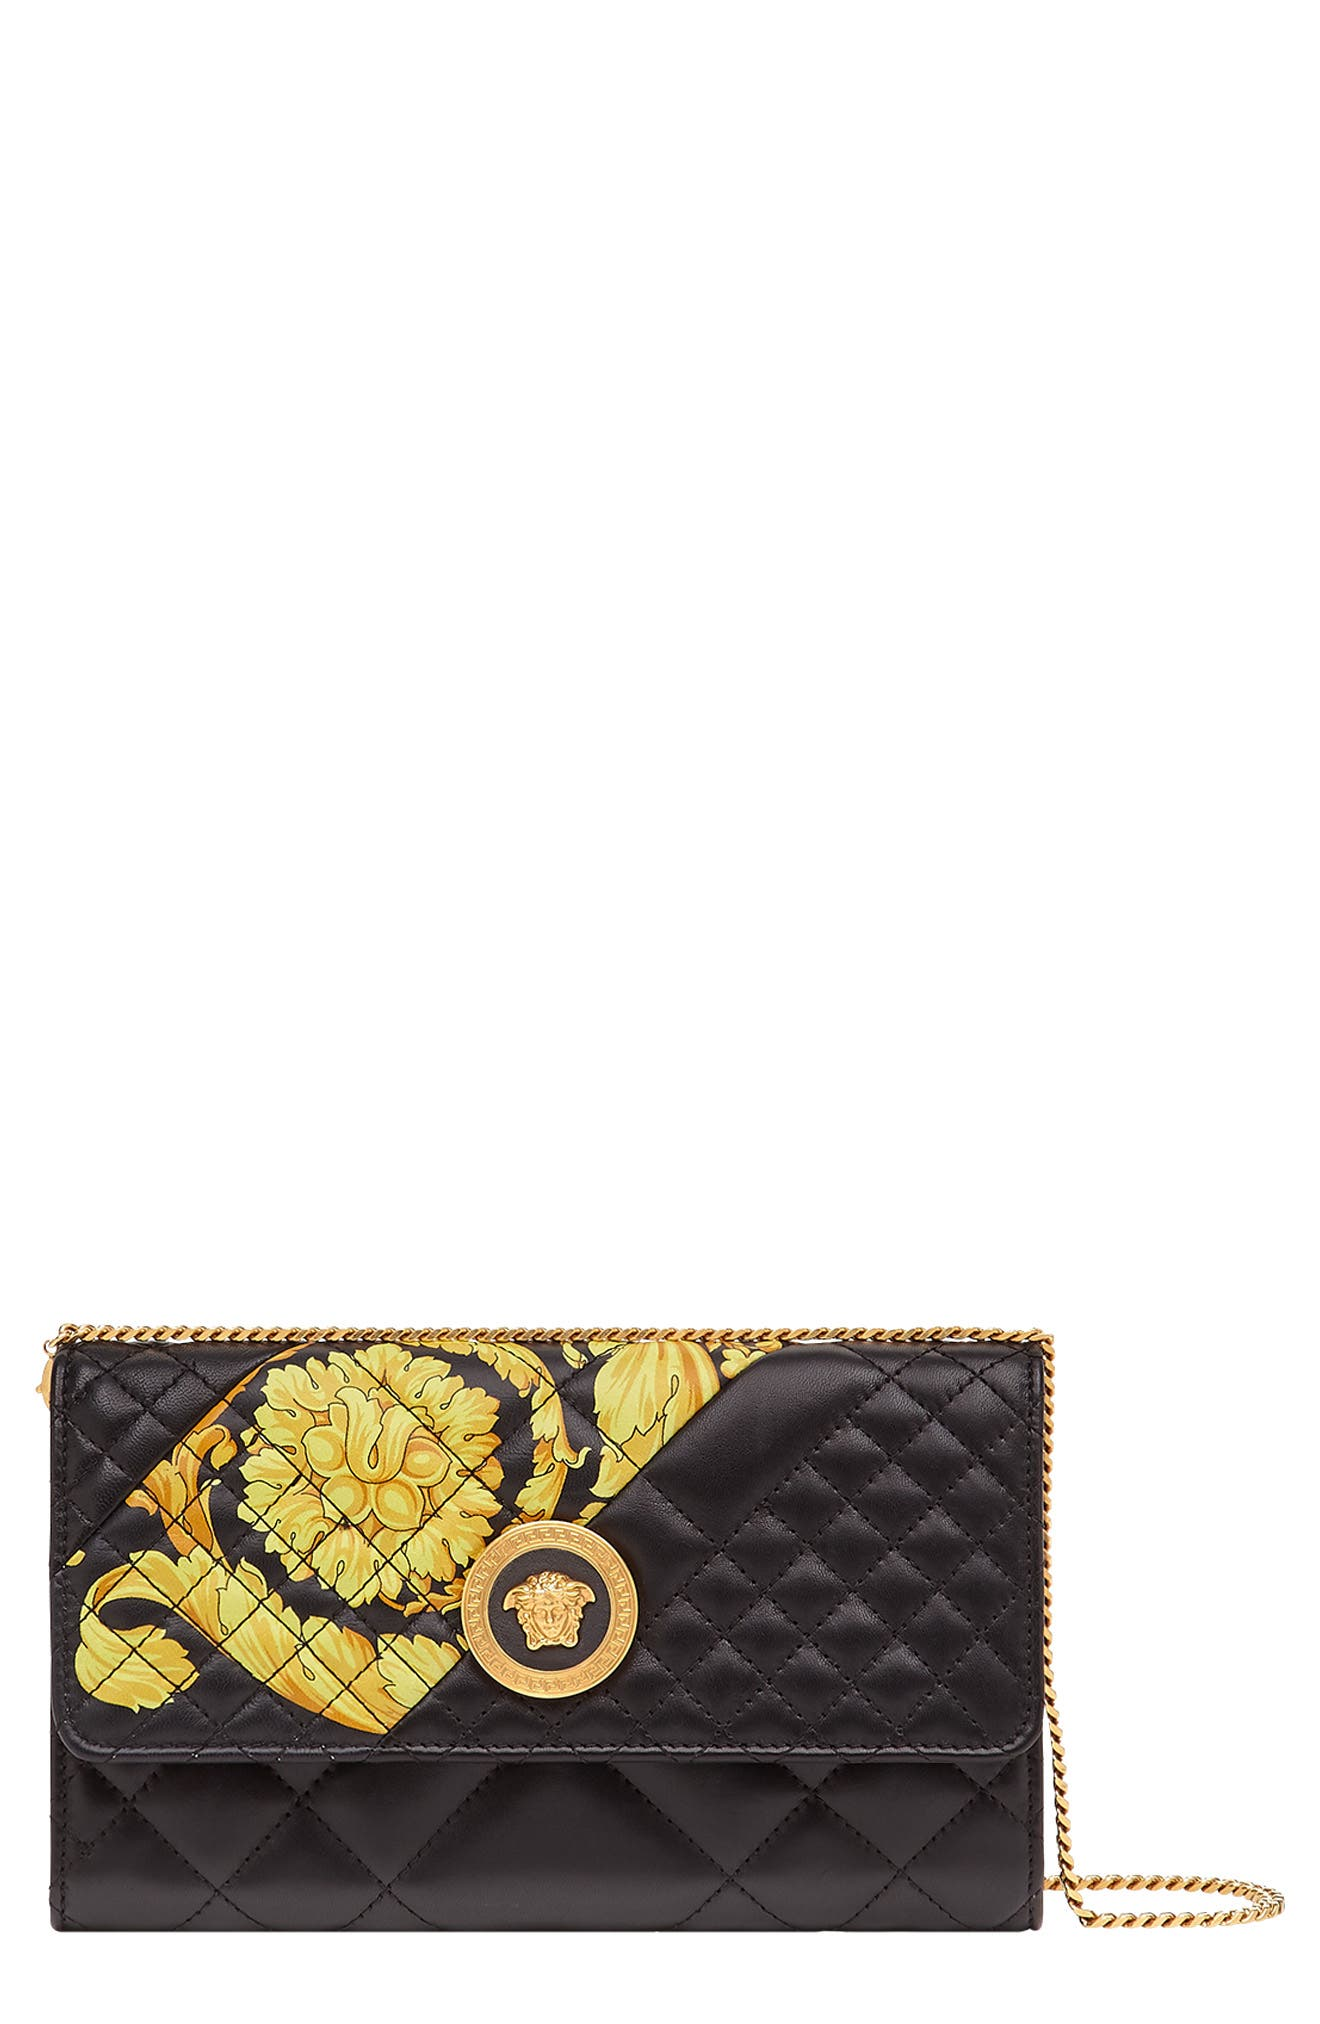 Baroque Icon Quilted Leather Crossbody Bag,                         Main,                         color, BLACK MULTI/ TRIBUTE GOLD